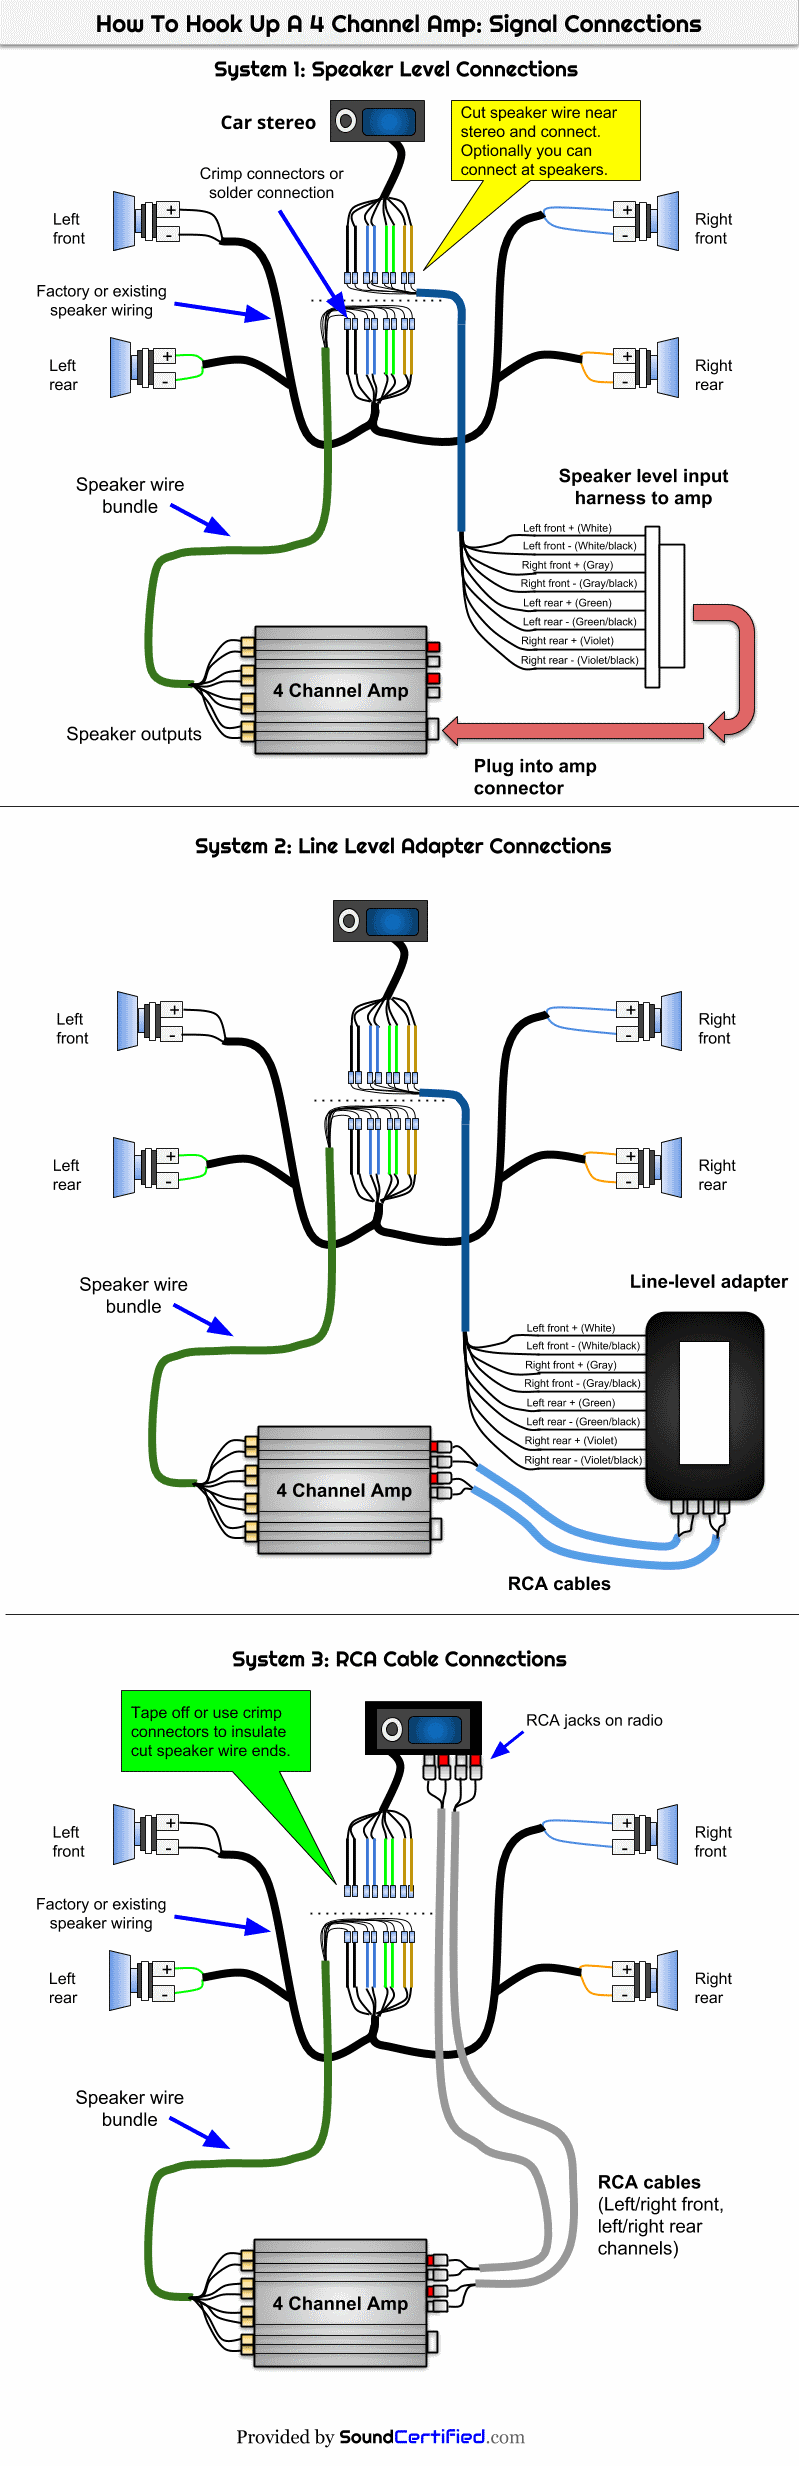 How To Hook Up A 4 Channel Amp Front And Rear Speakers Dual Usb Wiring Diagram Signal Connection